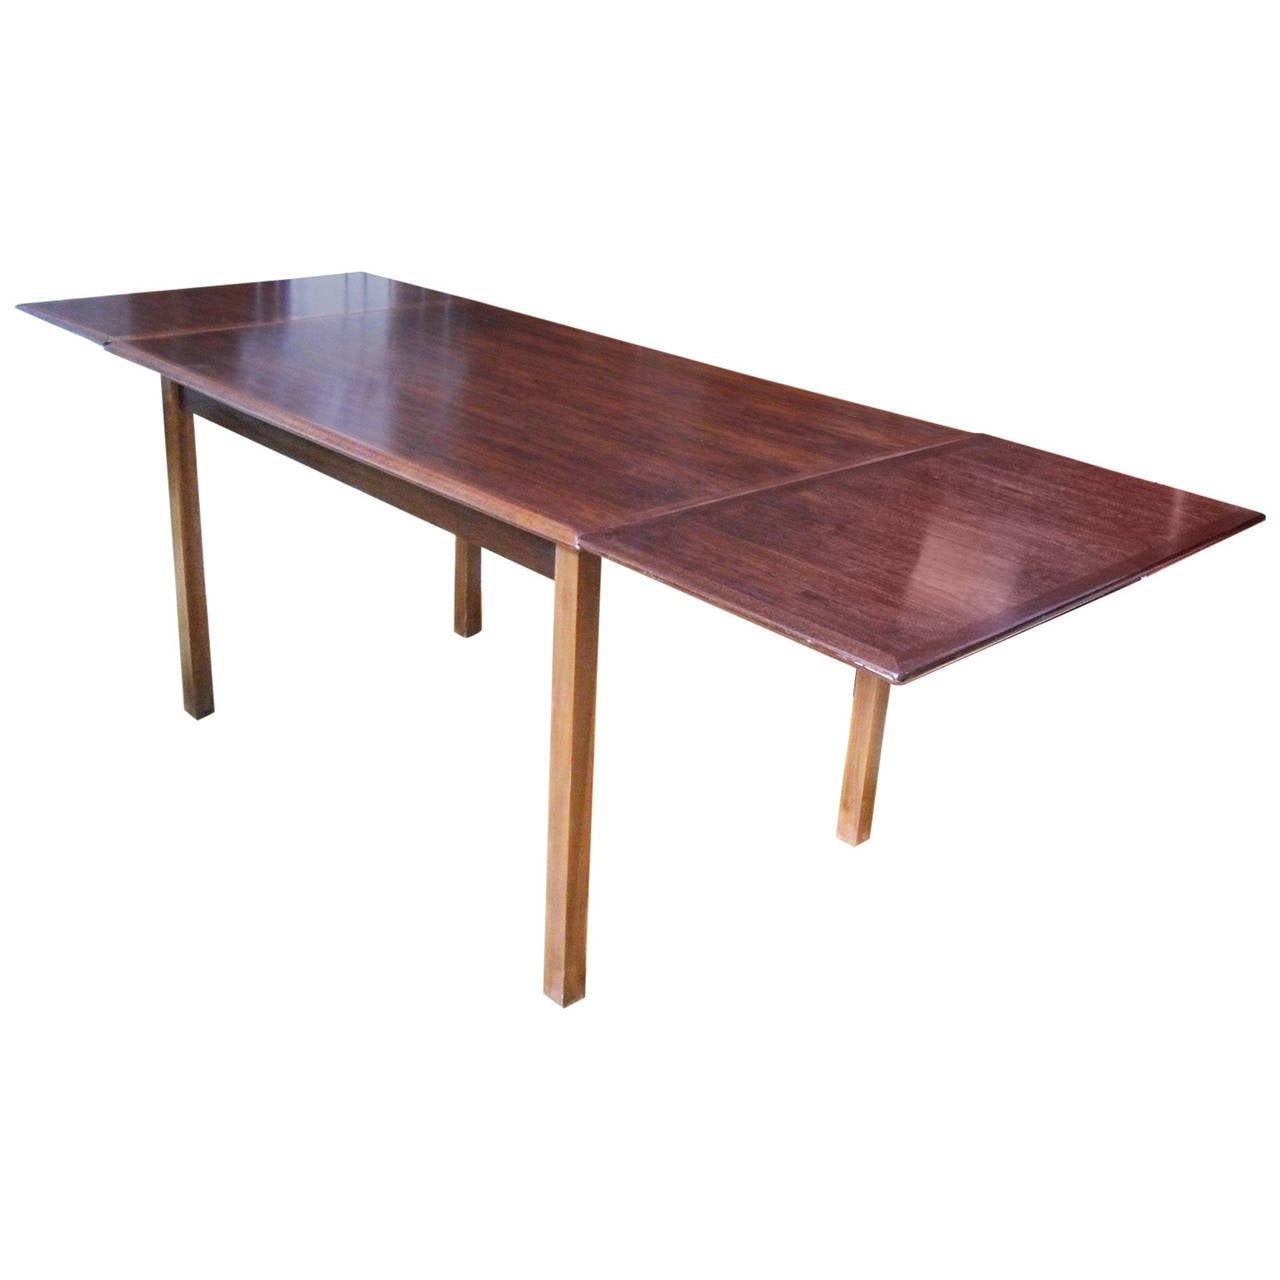 Mid century modern rosewood extendable dining table at 1stdibs for Dining room tables 1940s